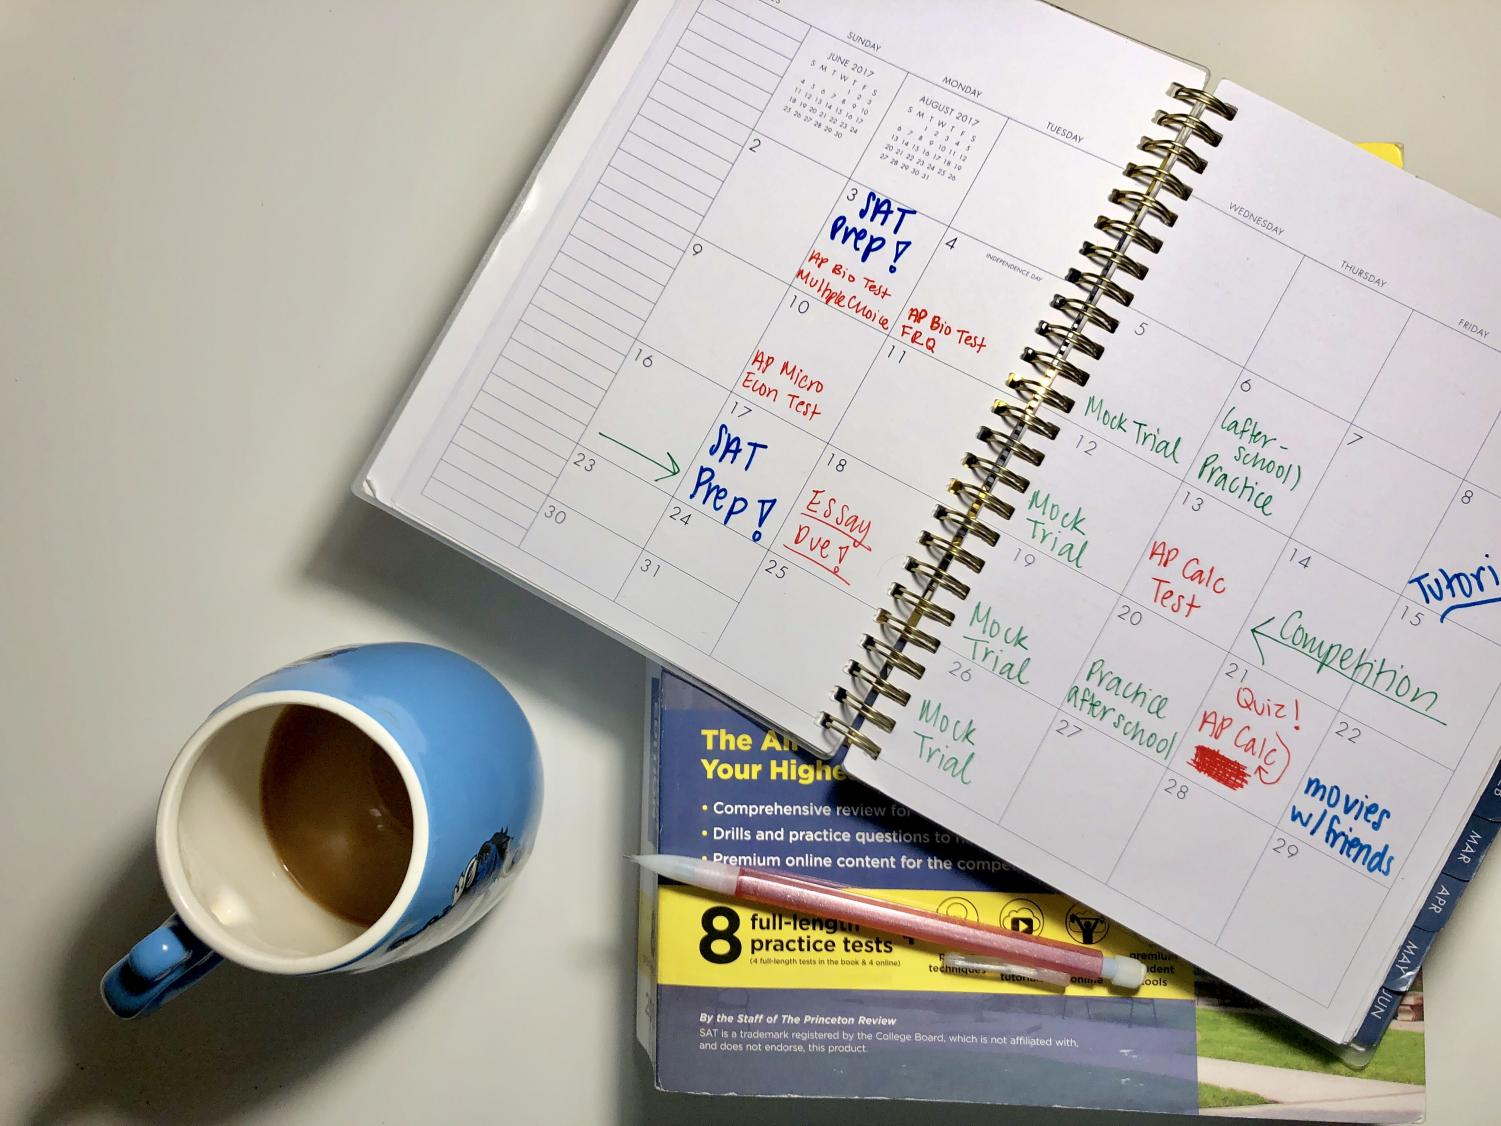 The typical schedule of a busy student is packed with different activities.